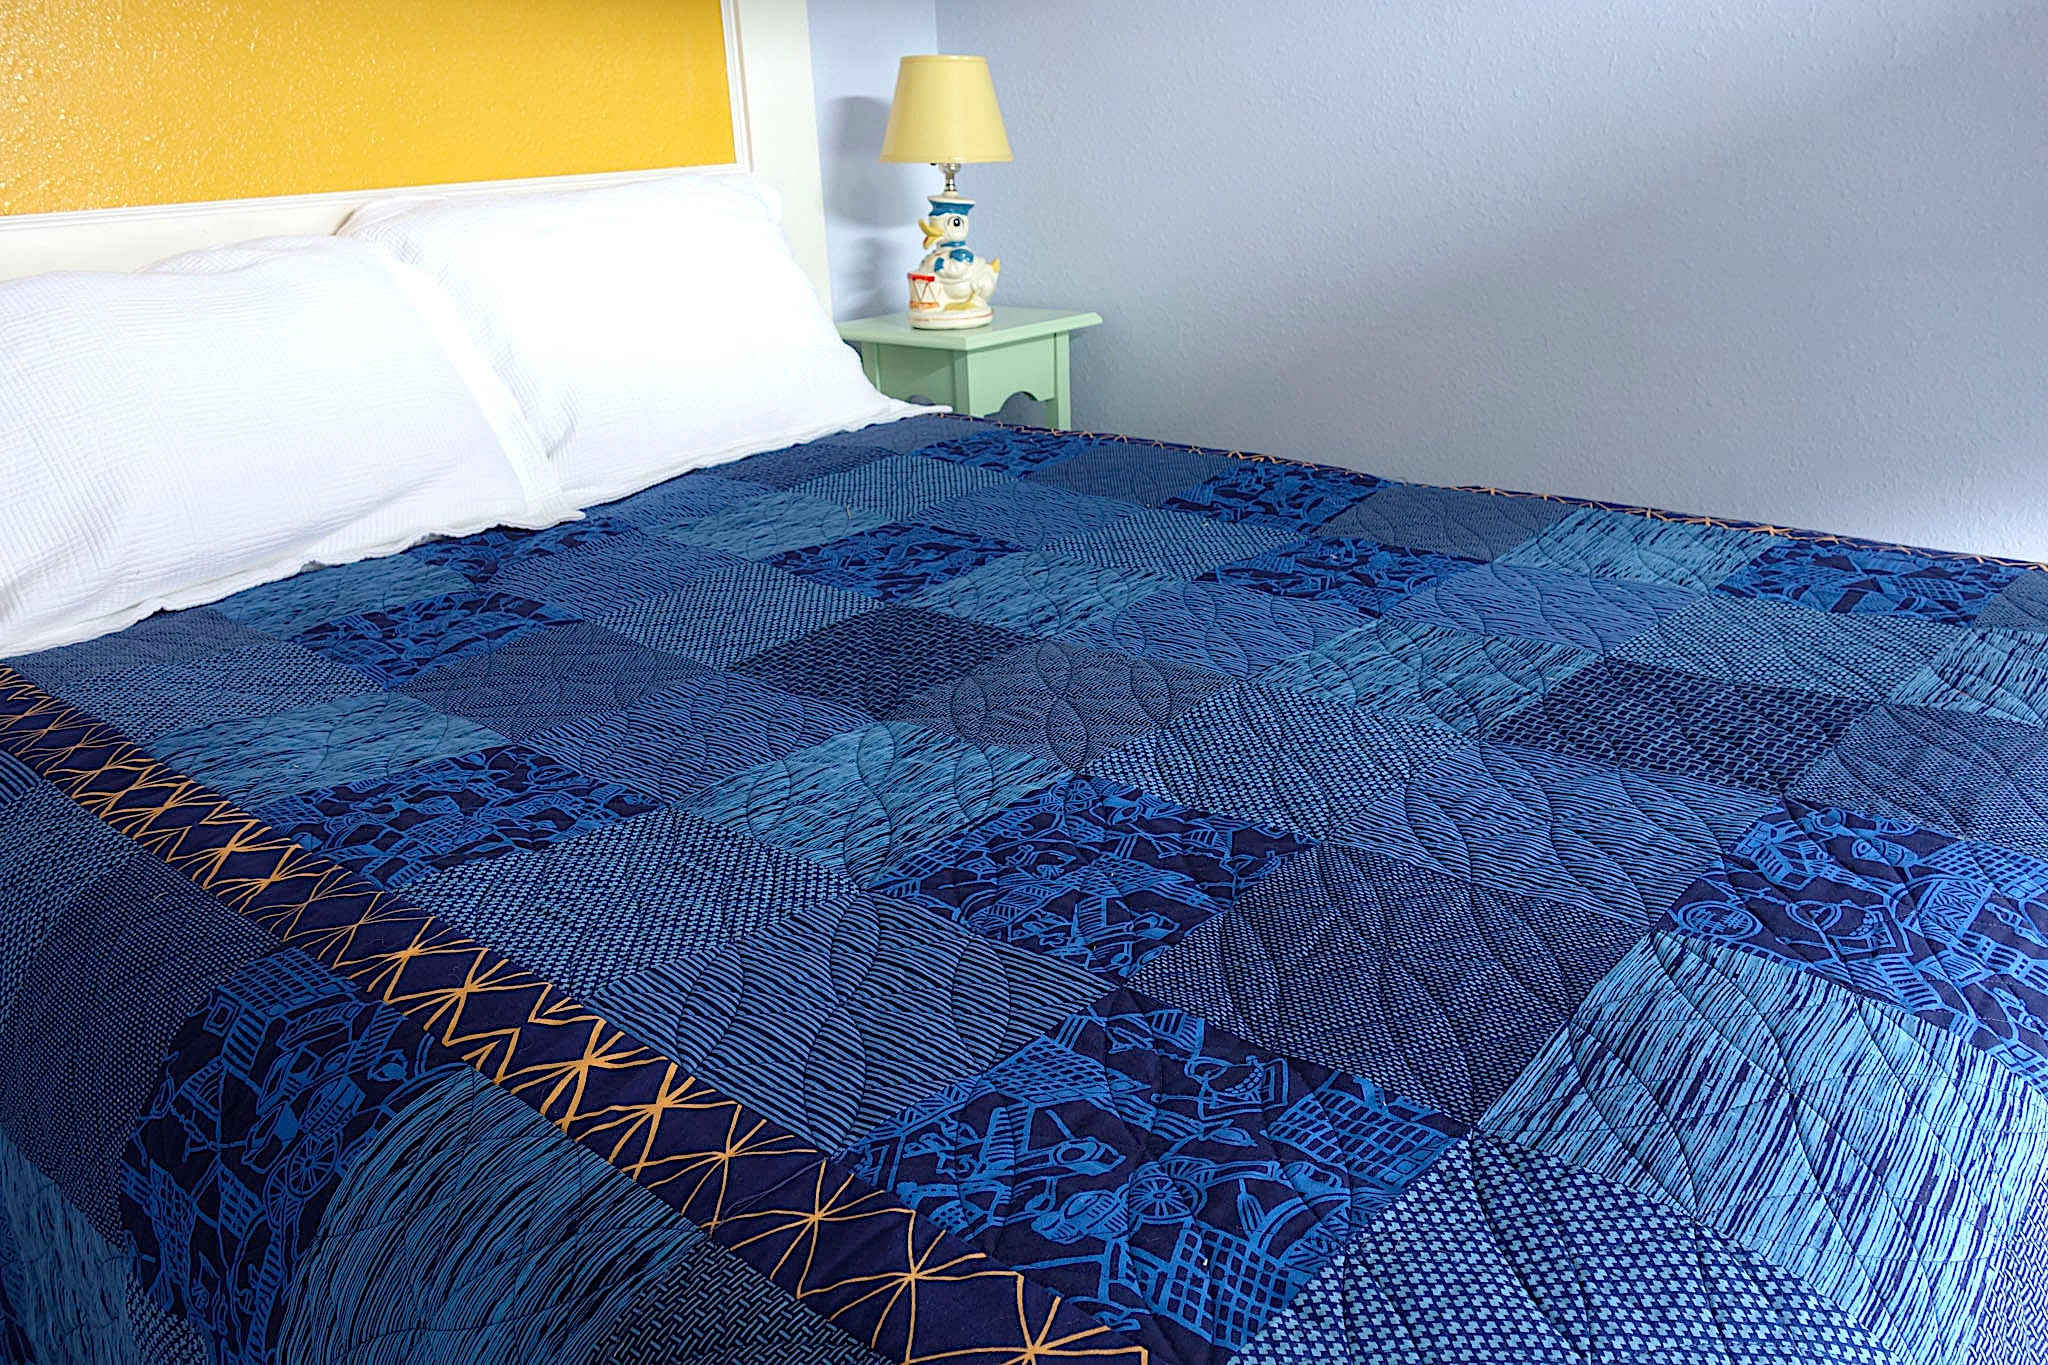 Indiglow, a king-size quilt by Patricia Belyea